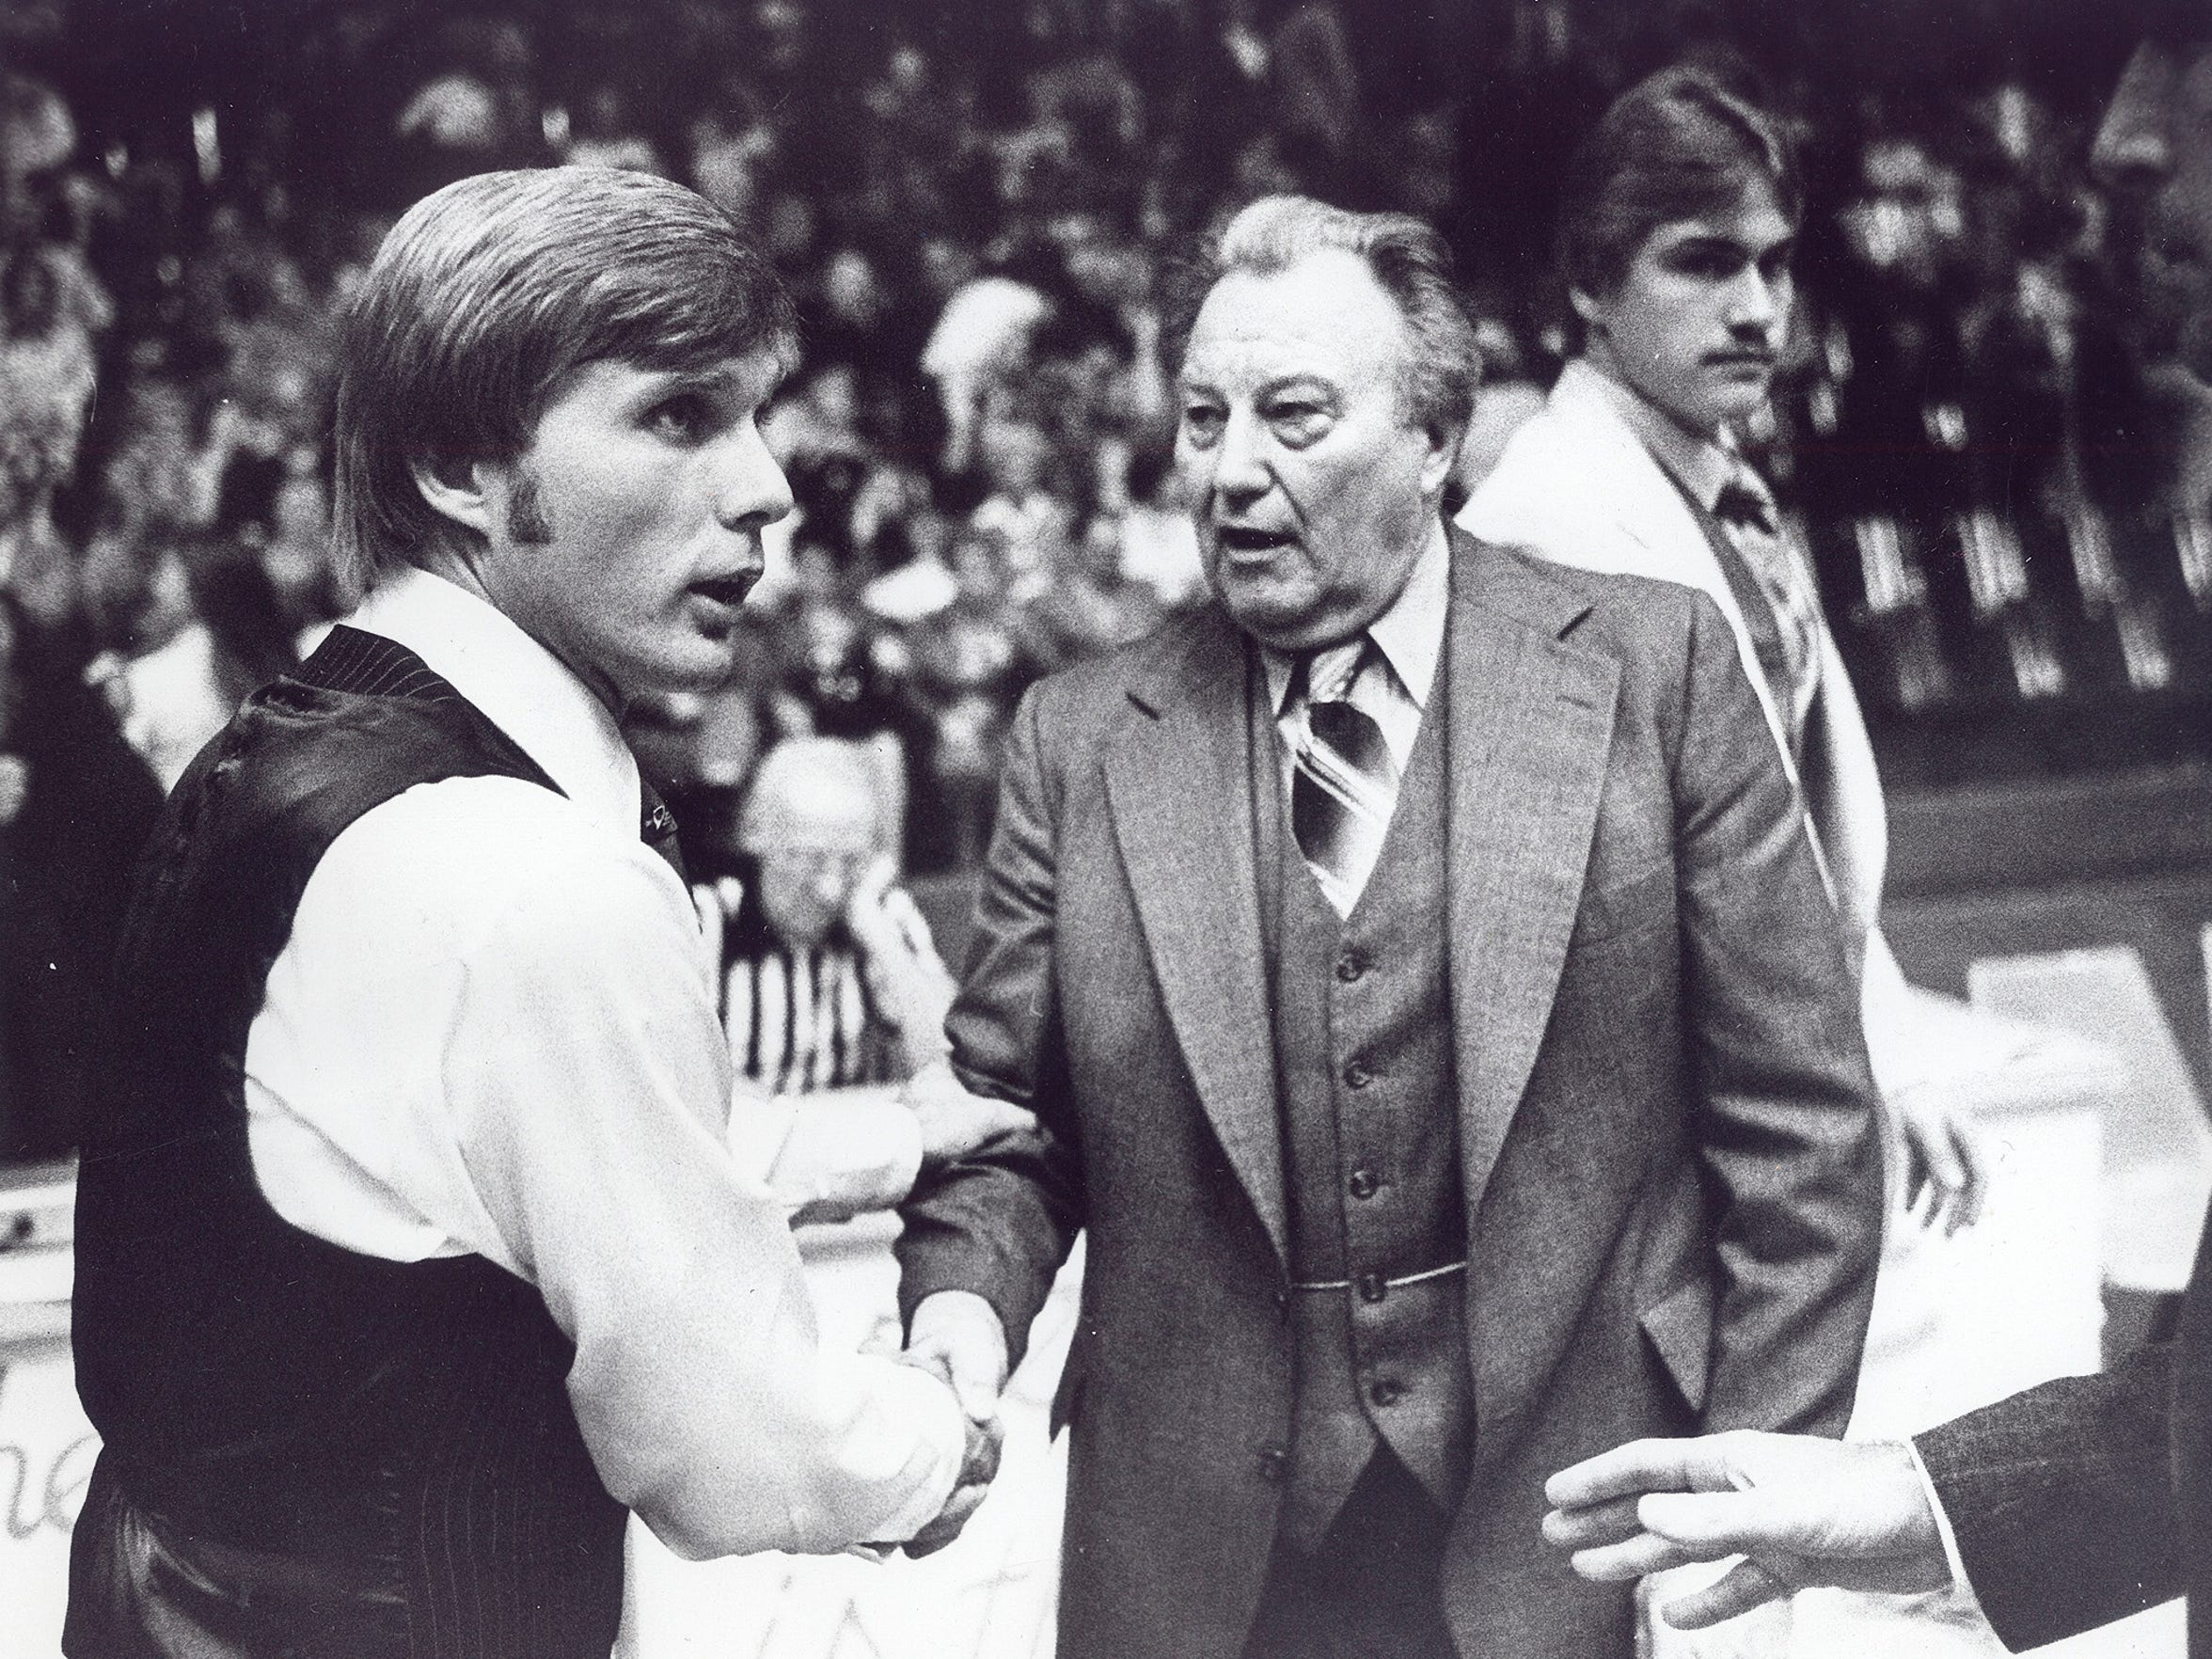 University of Evansville 1978-79 head coach Dick Walters